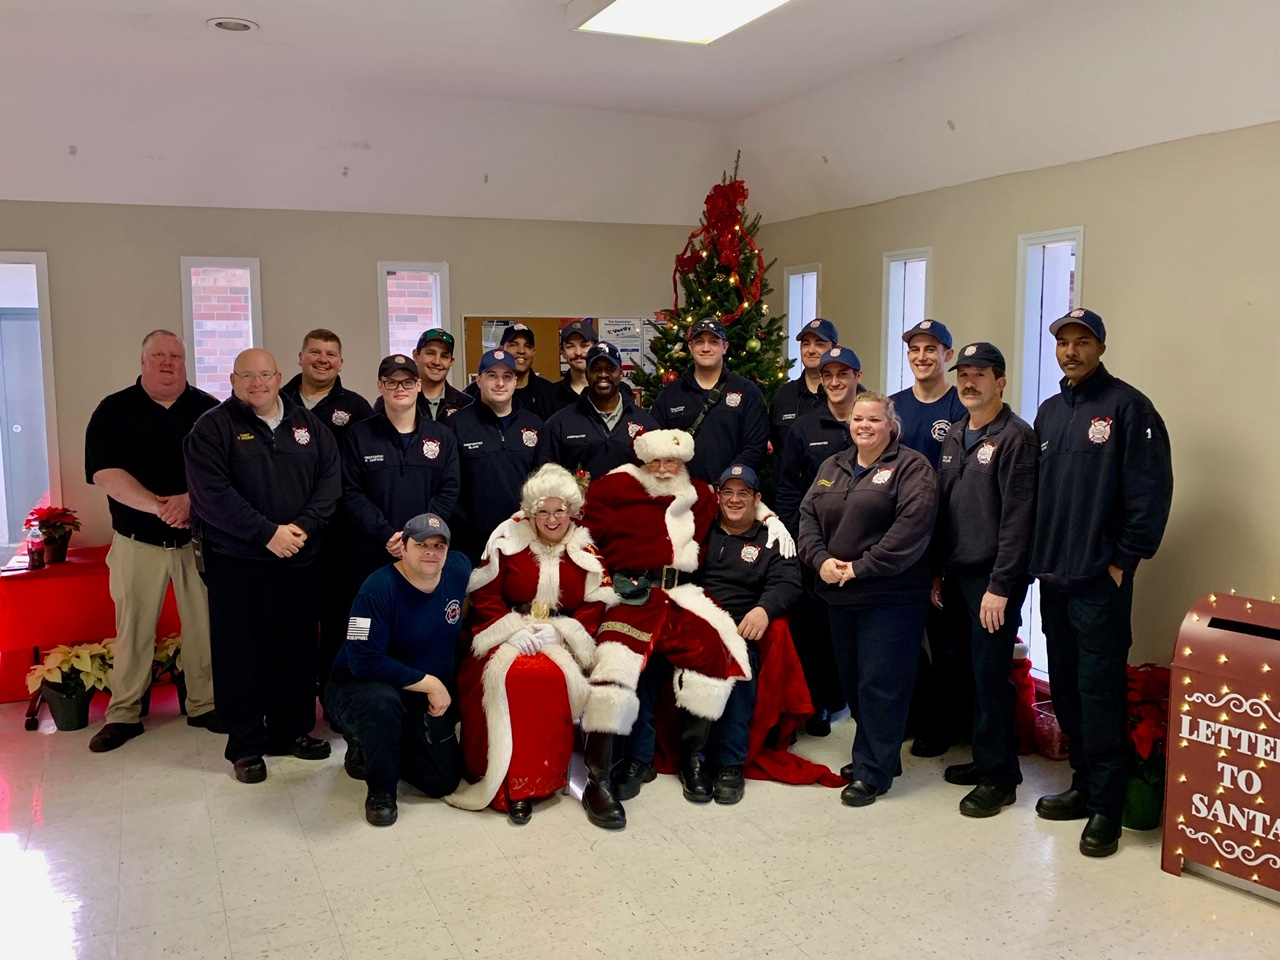 Fire Department staff posing with Santa and Mrs. Claus in front of a Christmas tree